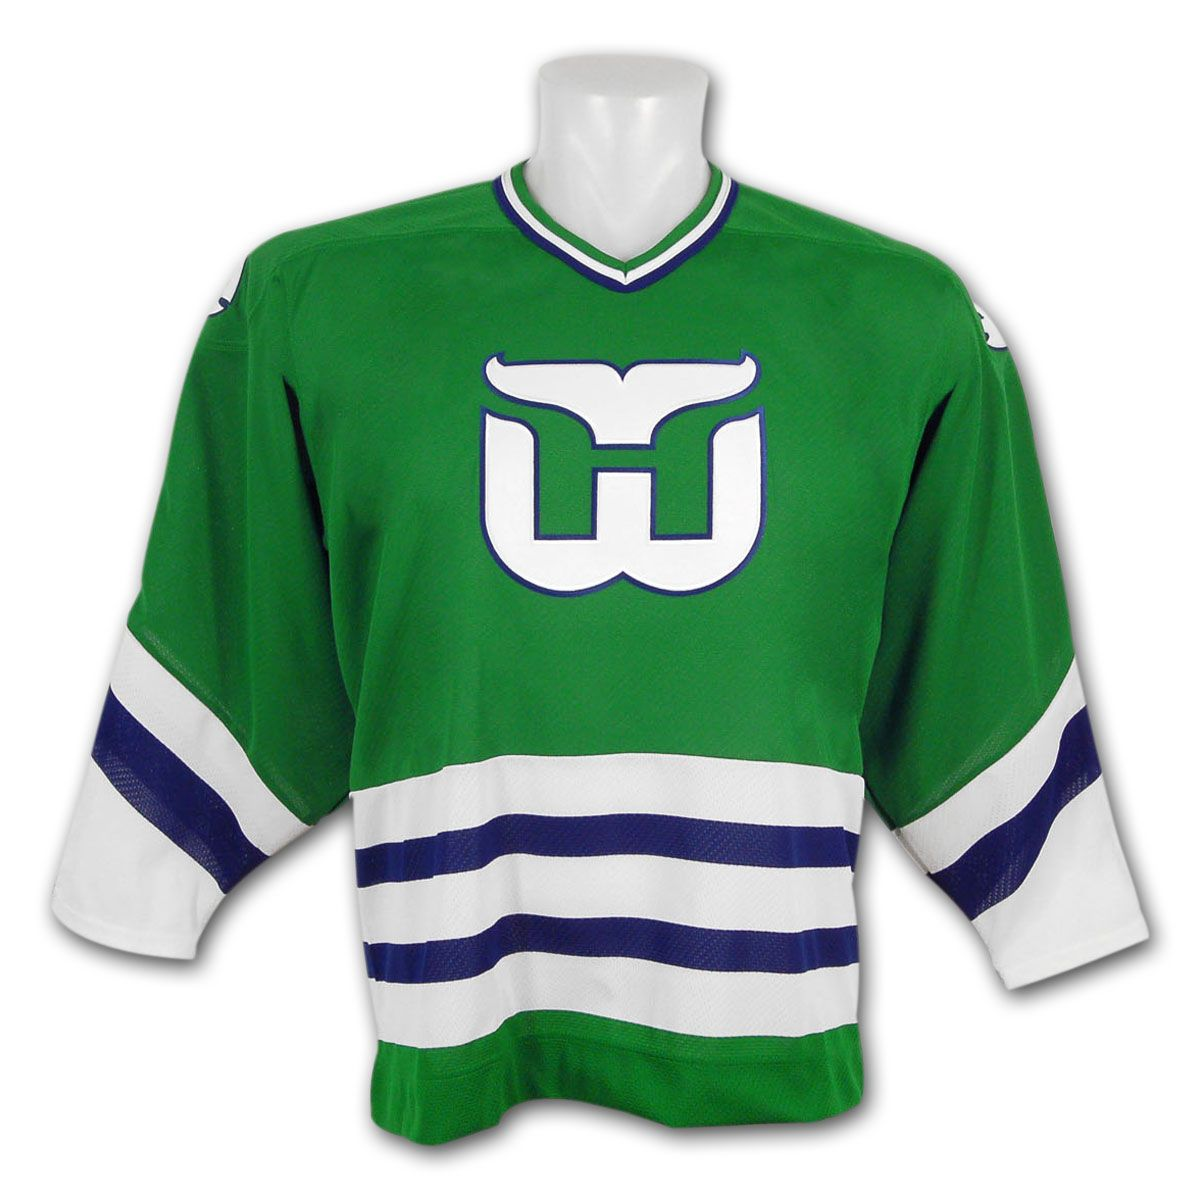 45c343fc6 Hartford Whalers Vintage Replica Jersey 1979 (Away) - Can be Customized at  IceJerseys.com - Official Fan Shop